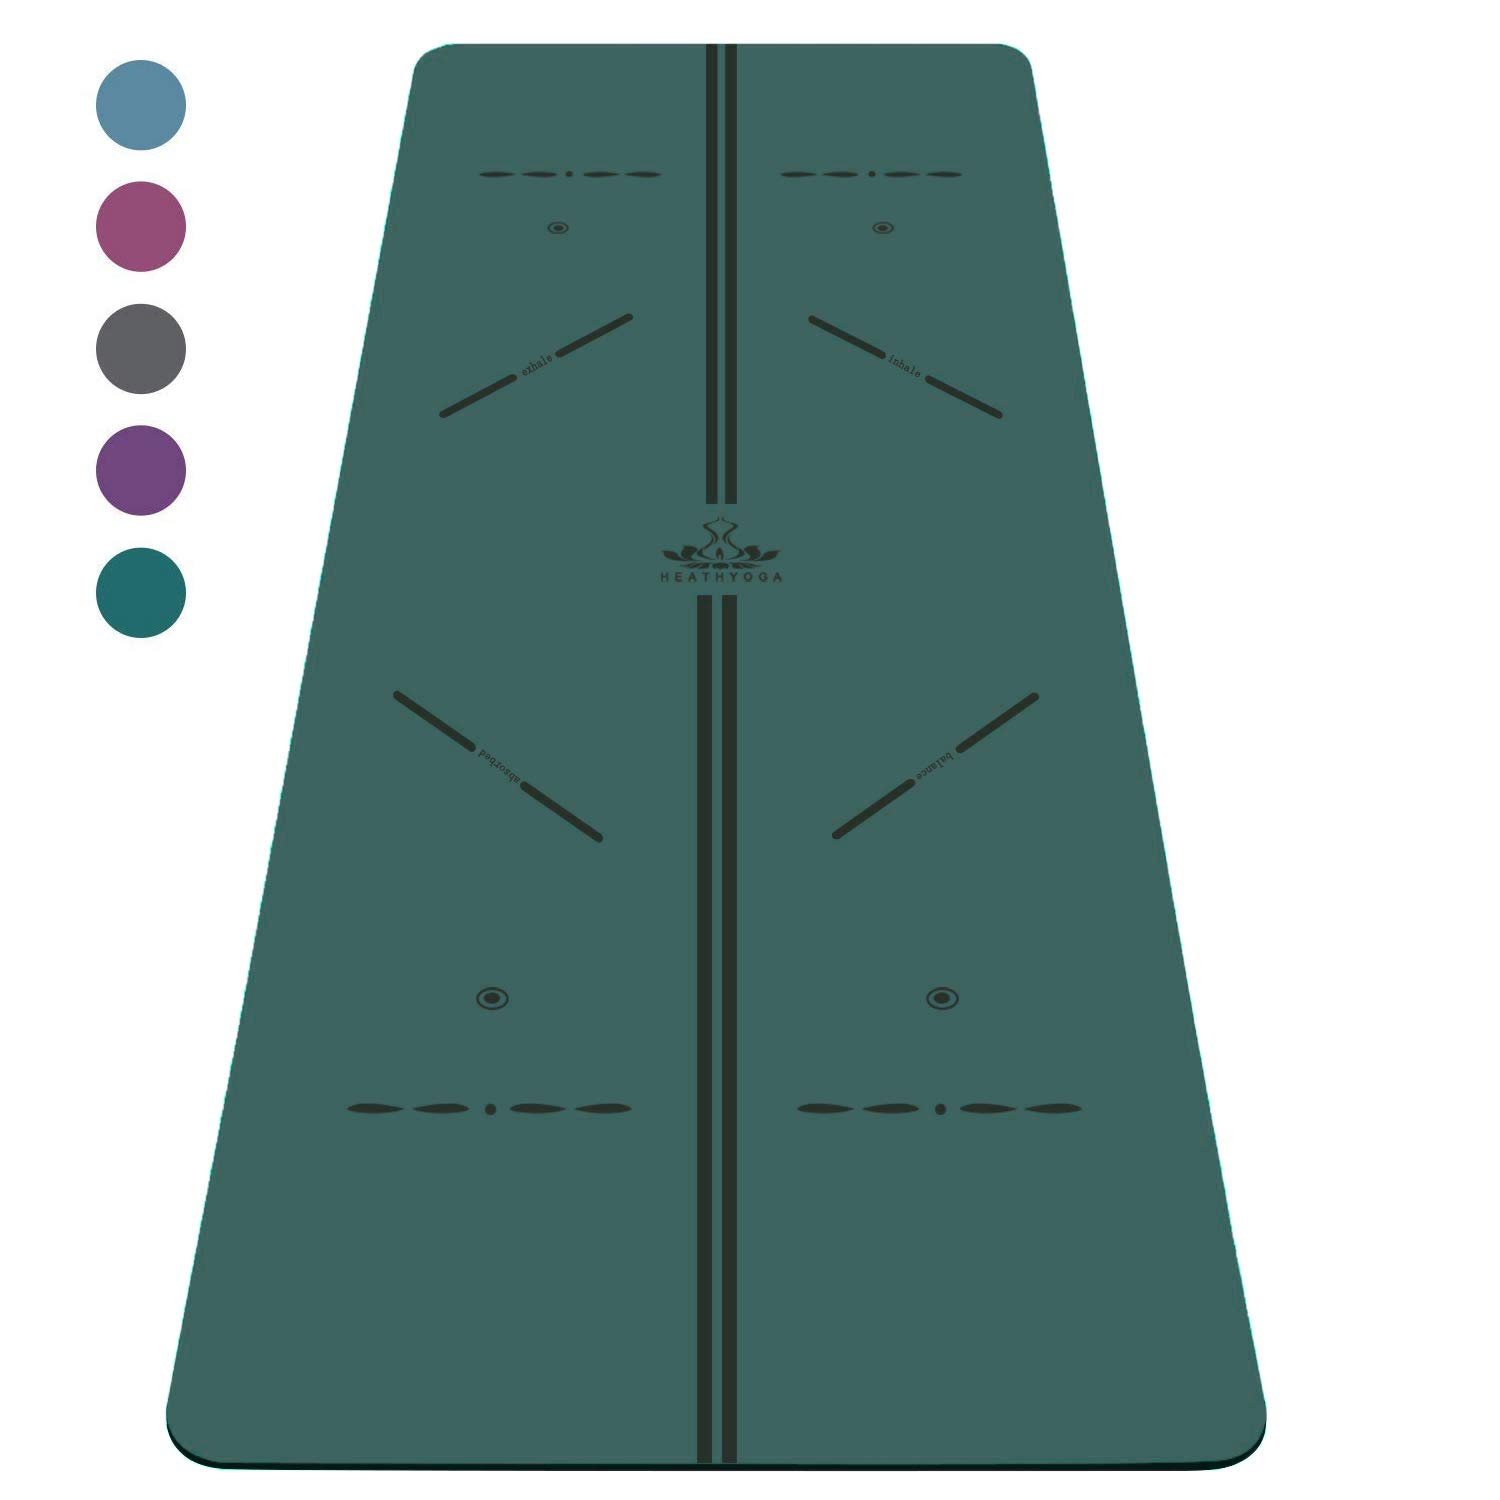 Heathyoga ProGrip Non Slip Yoga Mat with Alignment Lines, Revolutionary Wet-Grip Surface & Eco Friendly Material, Perfect for Hot Yoga and Bikram, Free Carry Bag 72''X26'' (Green) by Heathyoga